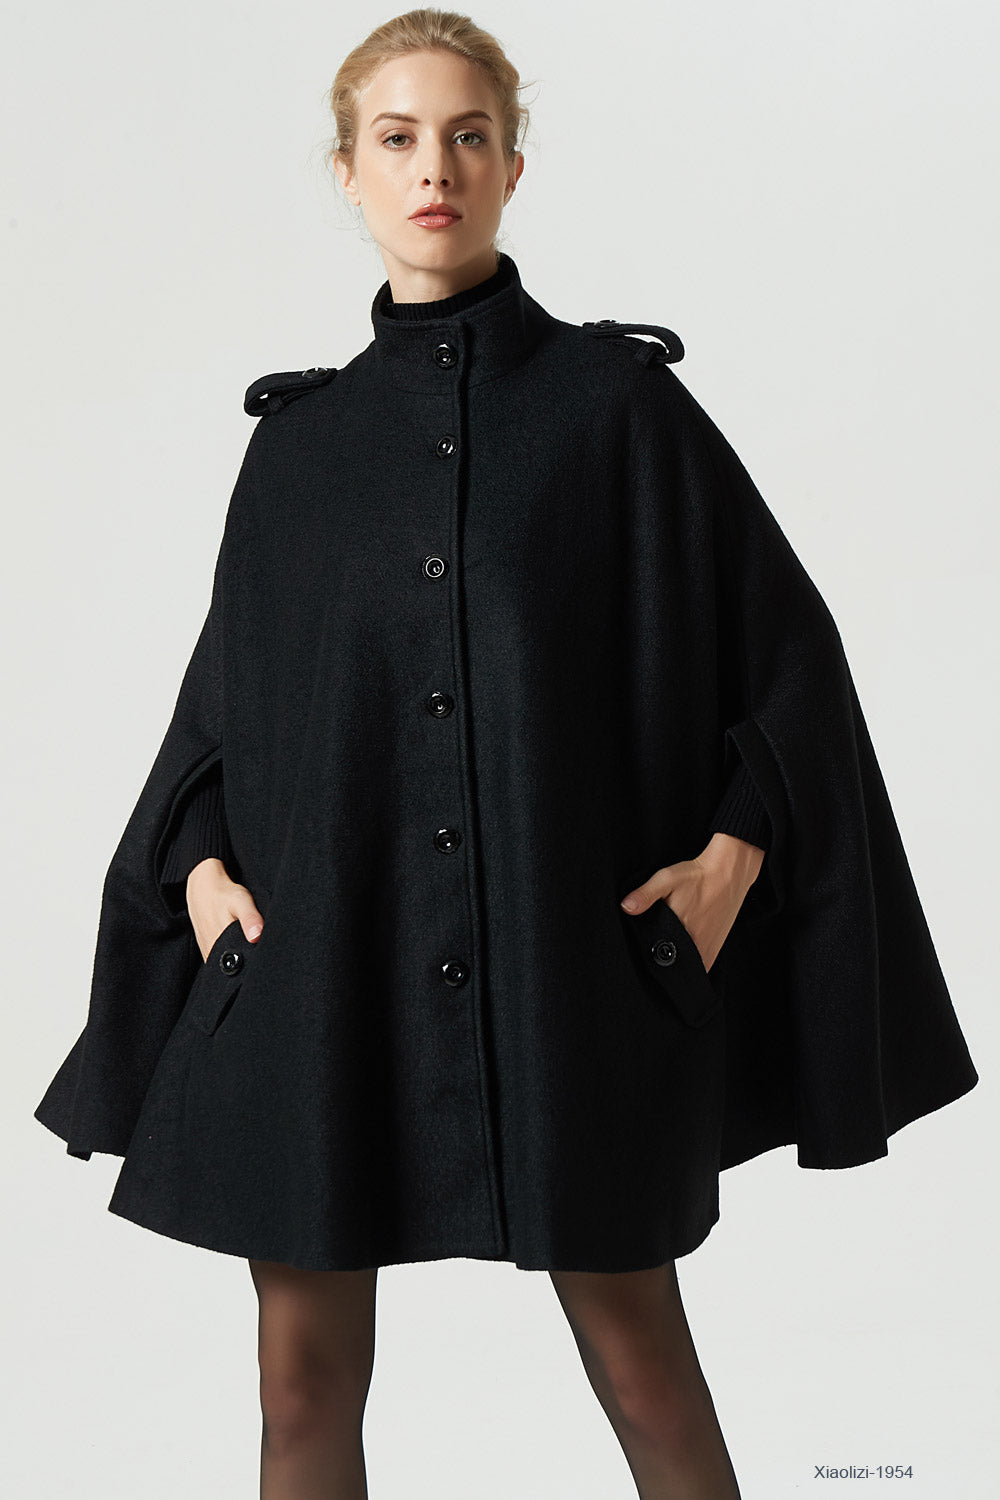 black wool cape plus size cape for women 1954#